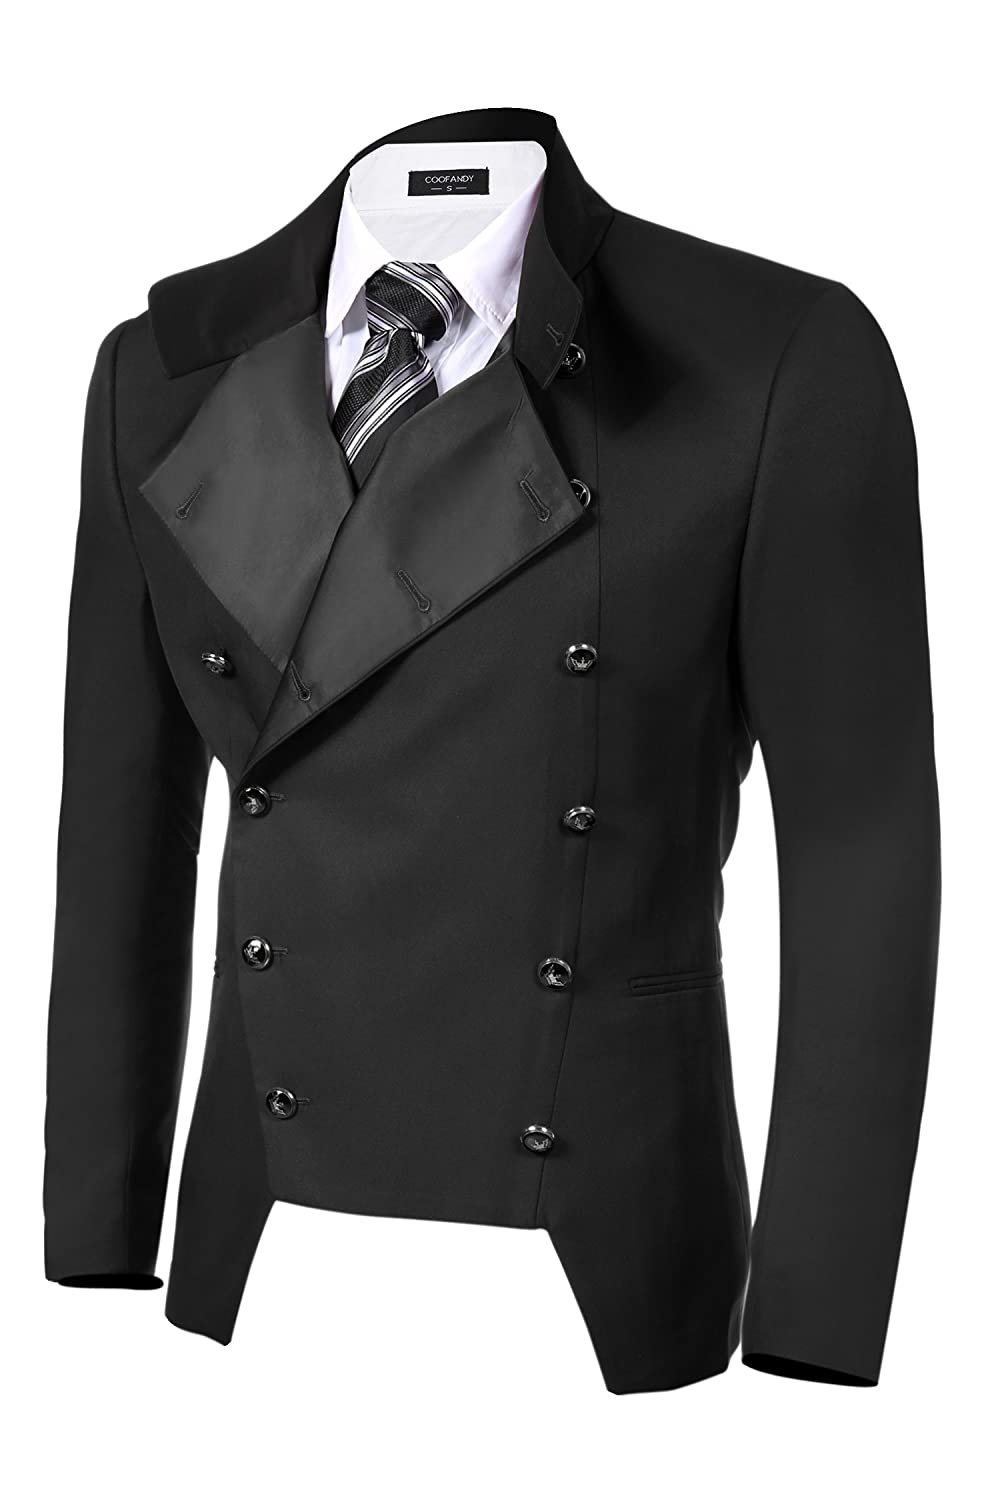 Men's Steampunk Jackets, Coats & Suits Double-breasted Jacket Slim Fit Blazer $47.99 AT vintagedancer.com